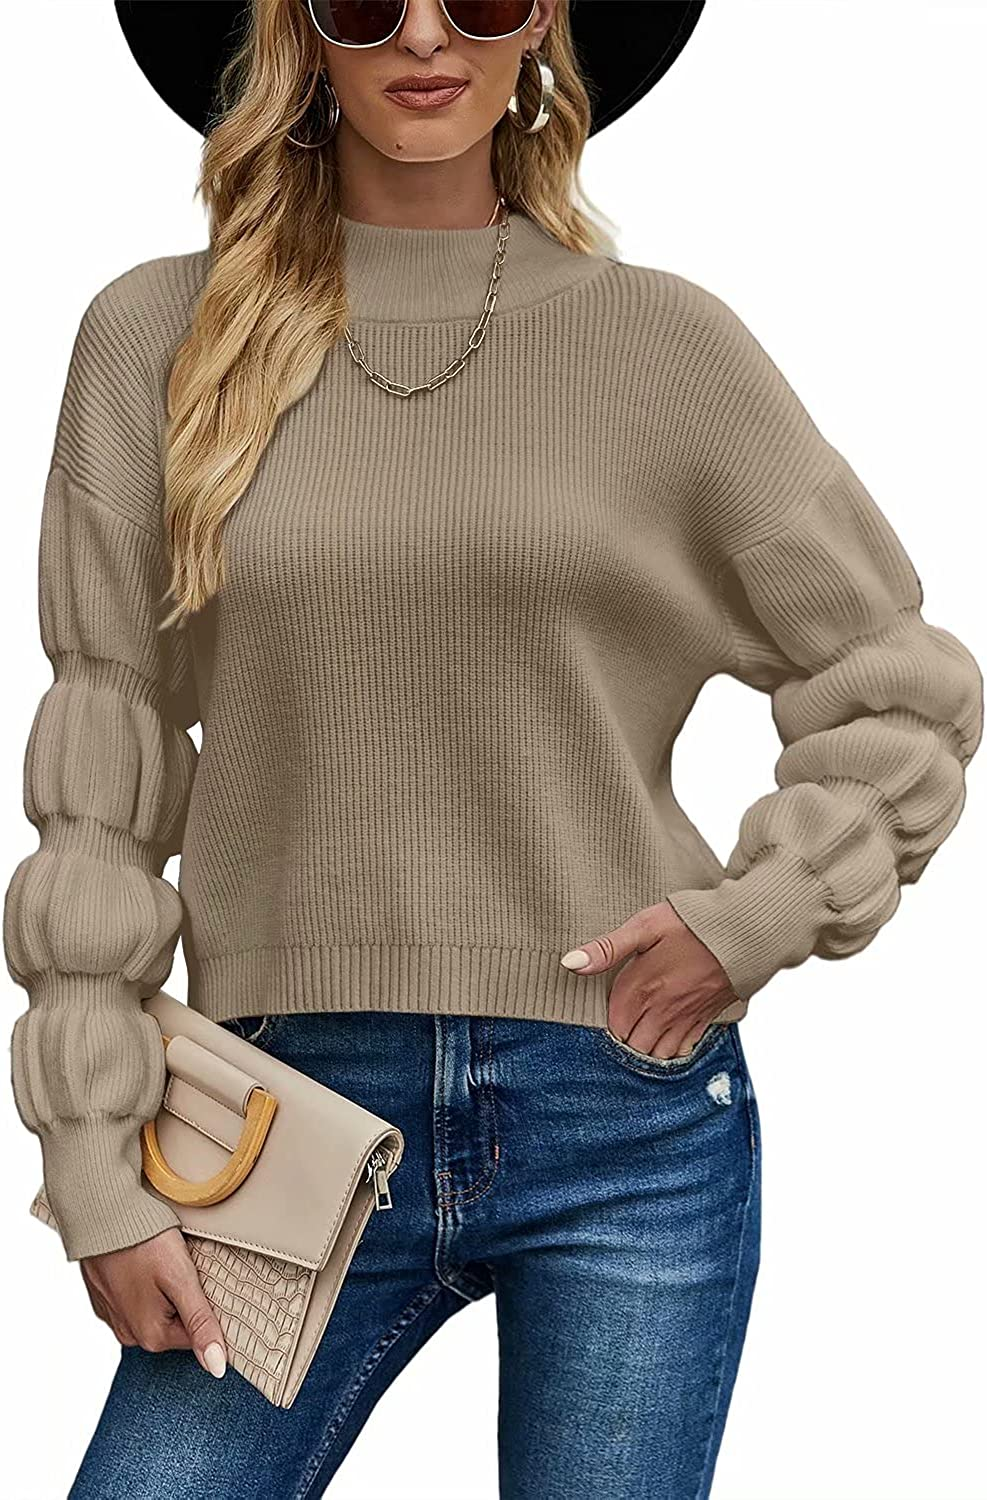 SUPERLOOK Women's Turtleneck Puff Sleeve Sweater Loose Casual Ripped Knit Pullover Jumper Top